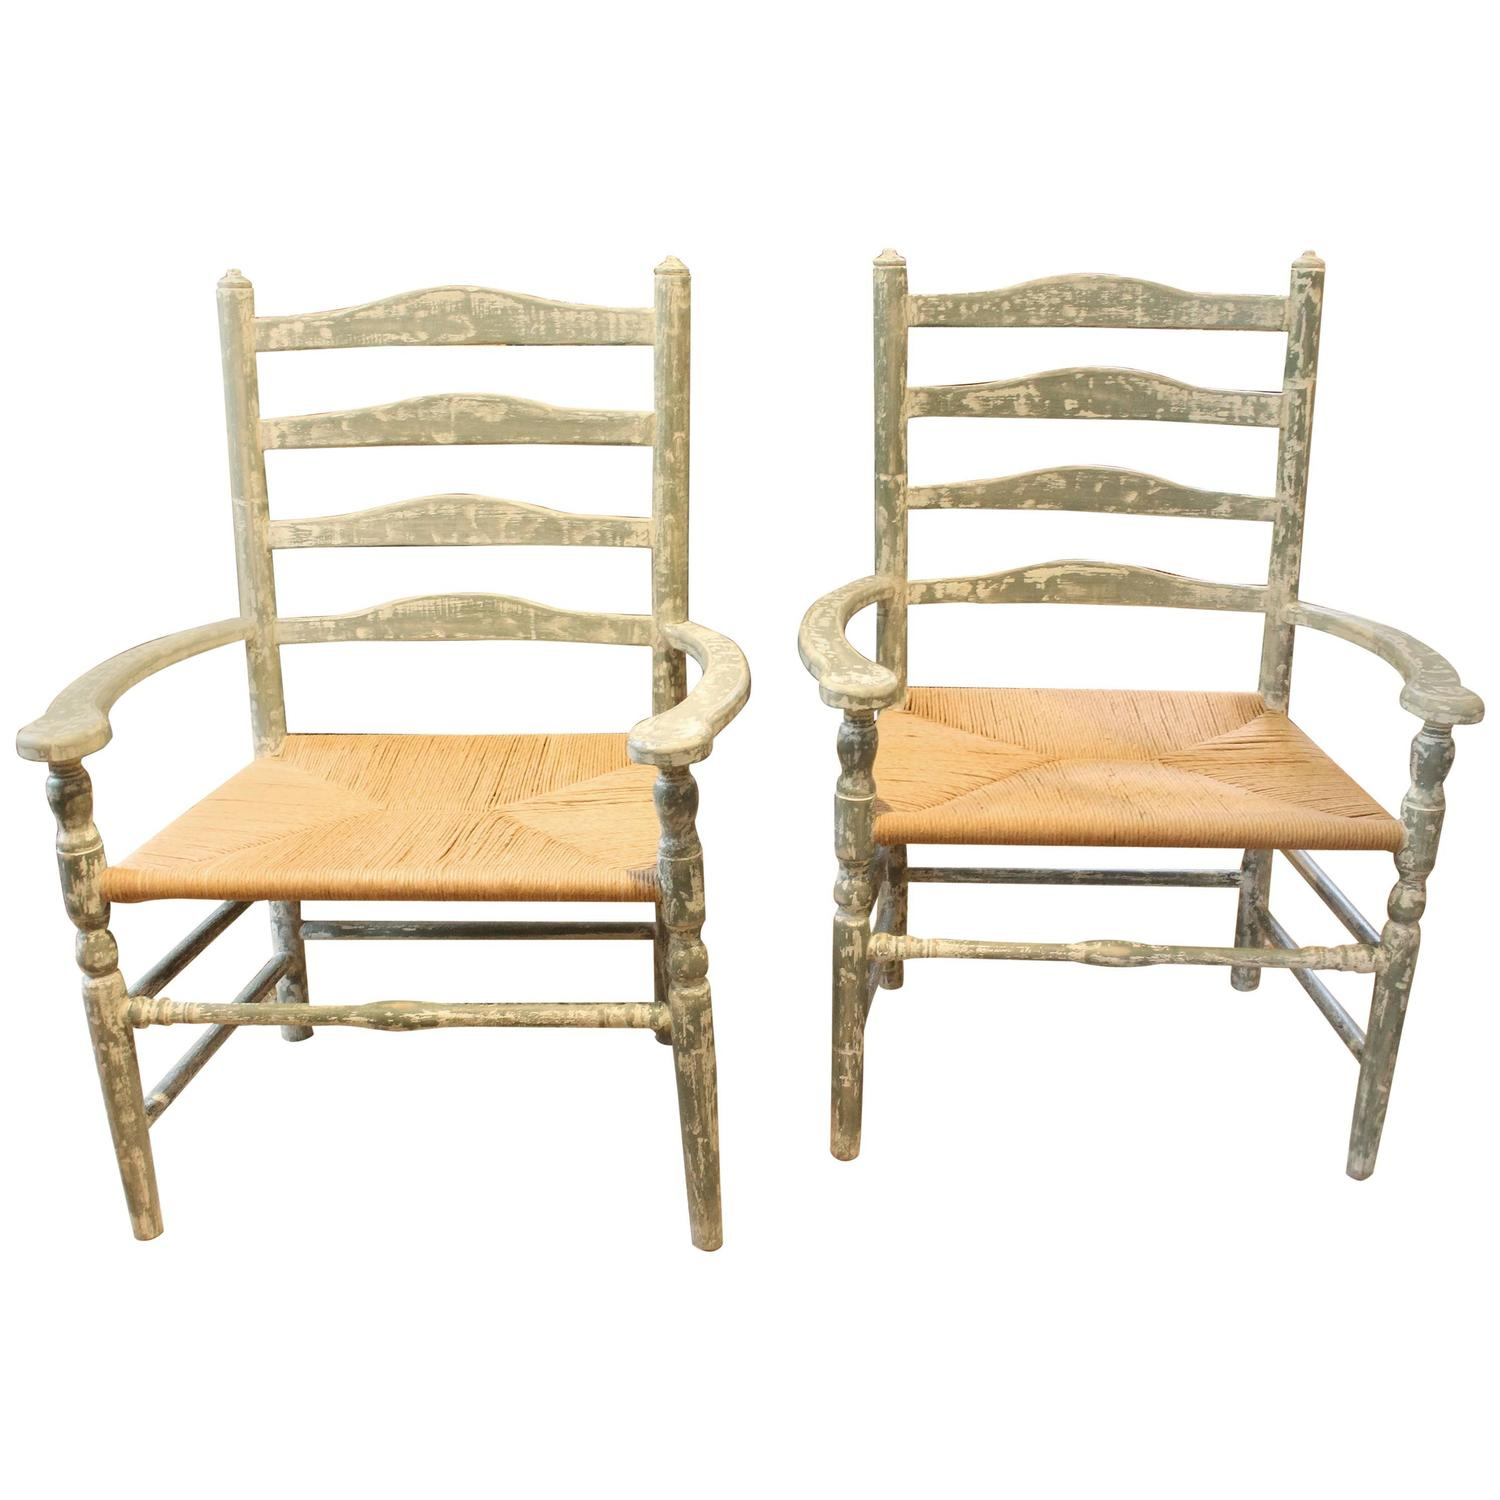 19th century provincial chairs at 1stdibs